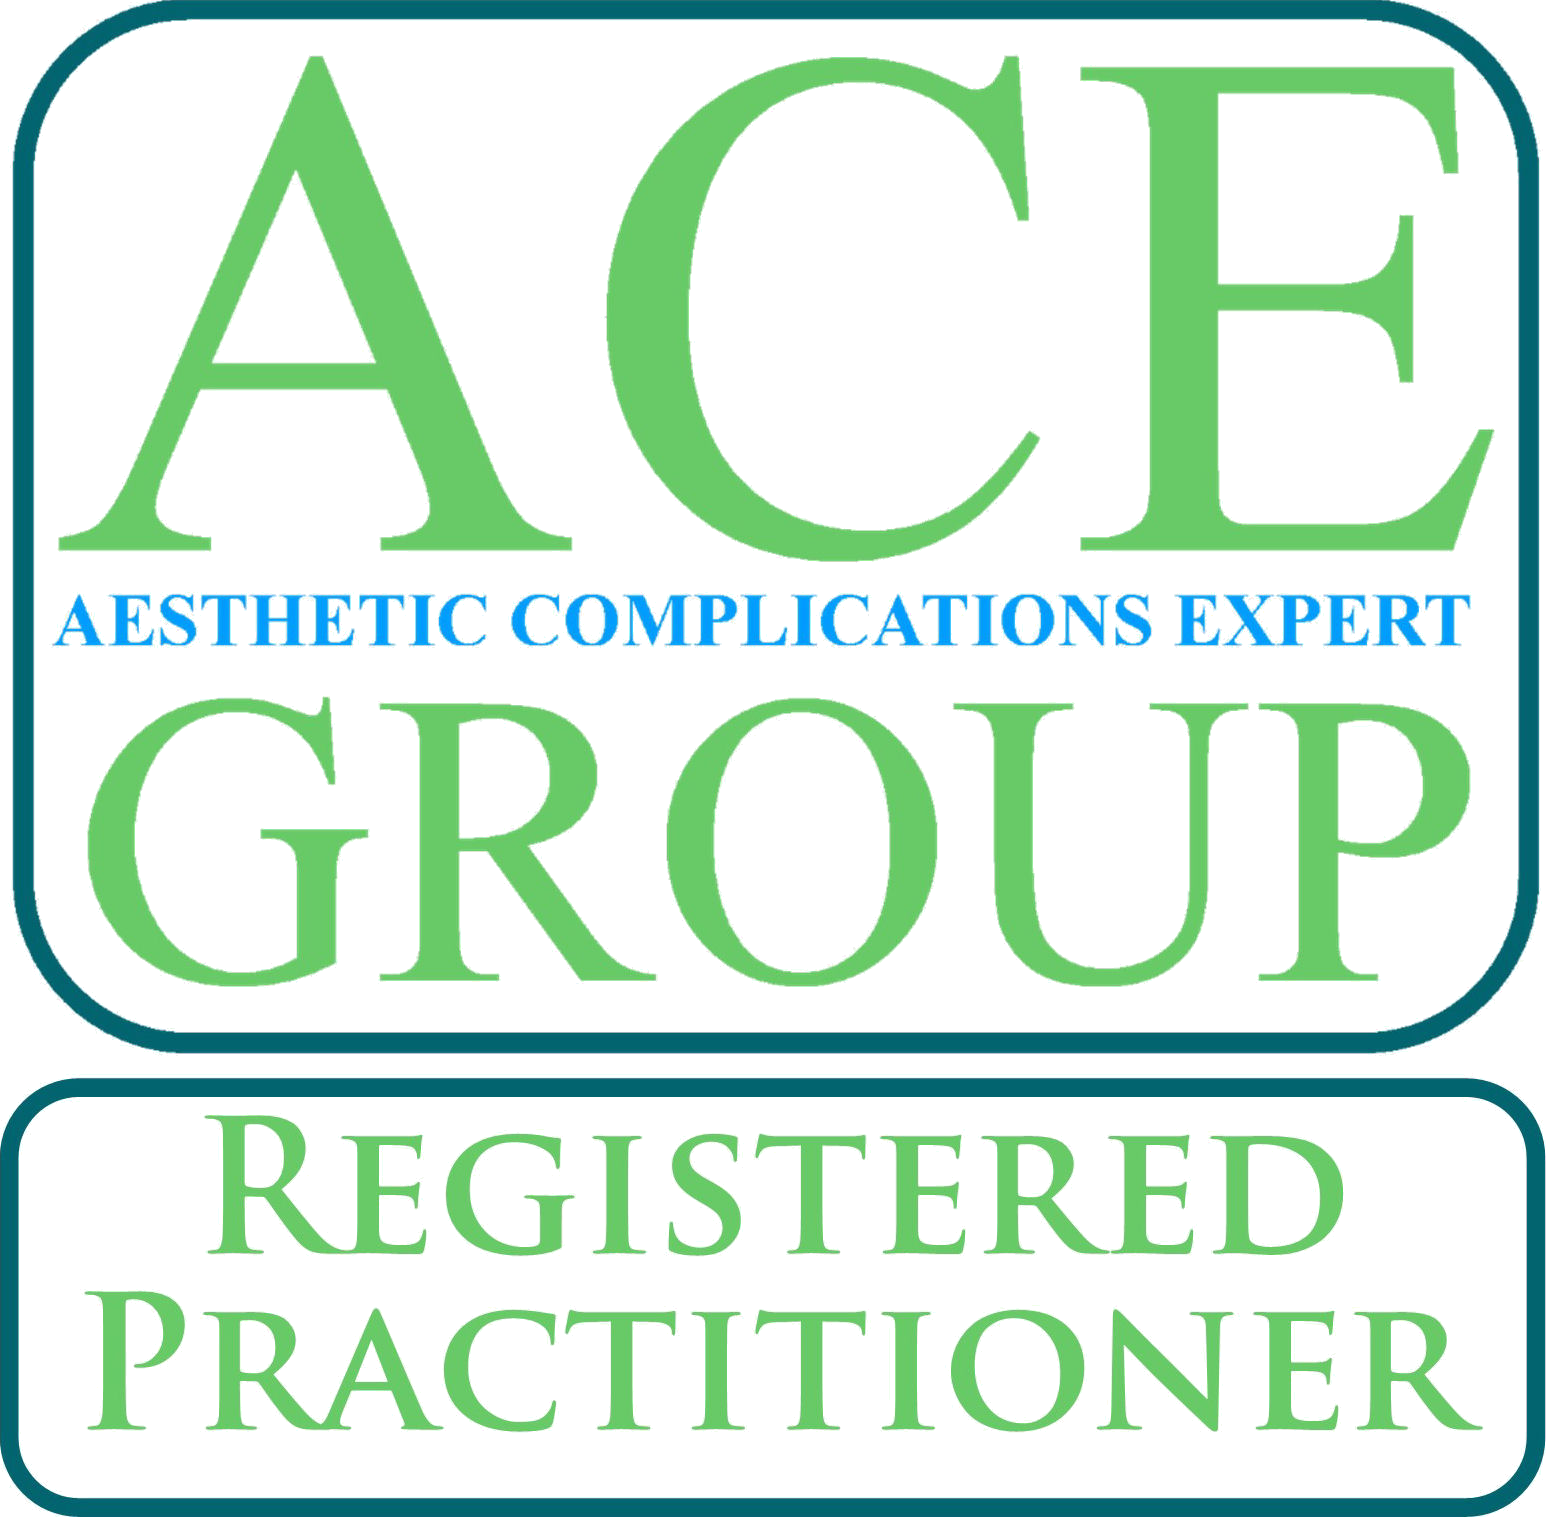 Registered practitioner